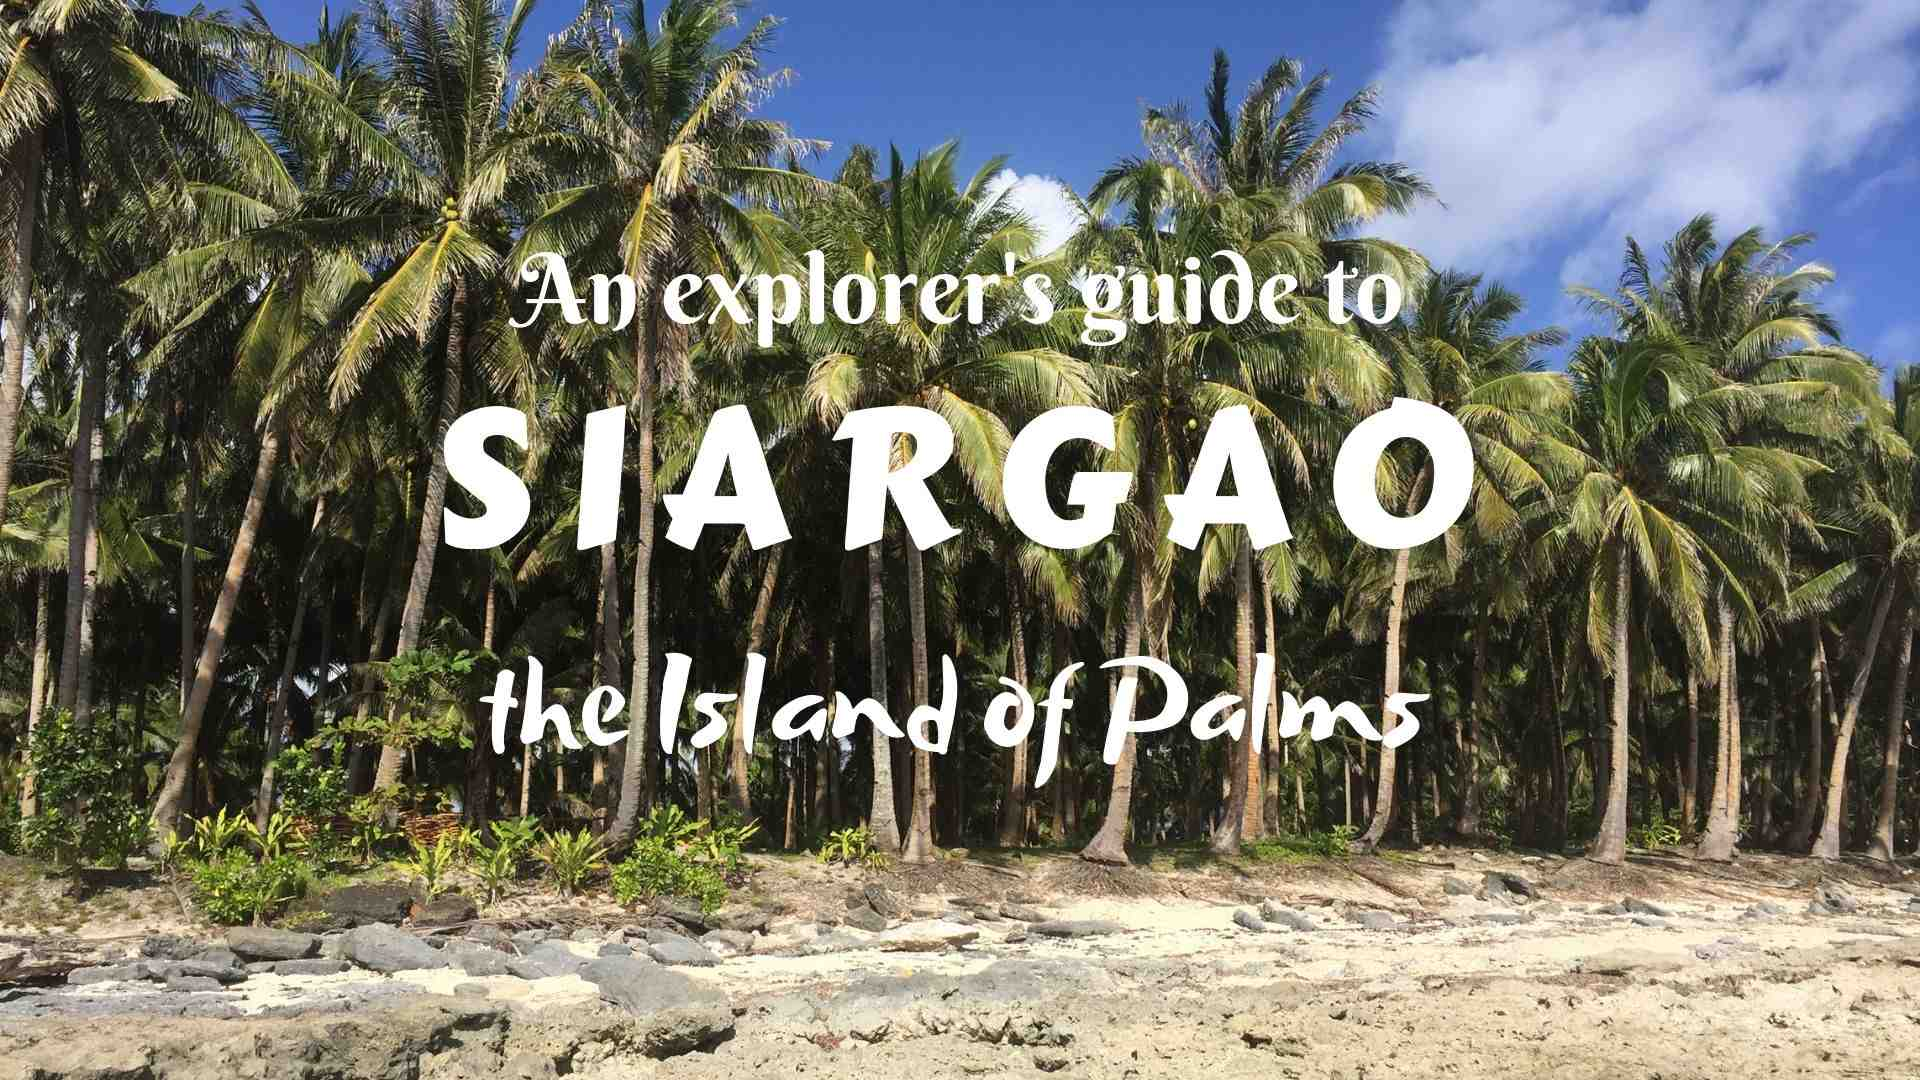 Explorer's guide to Siargao- the Island of Palms